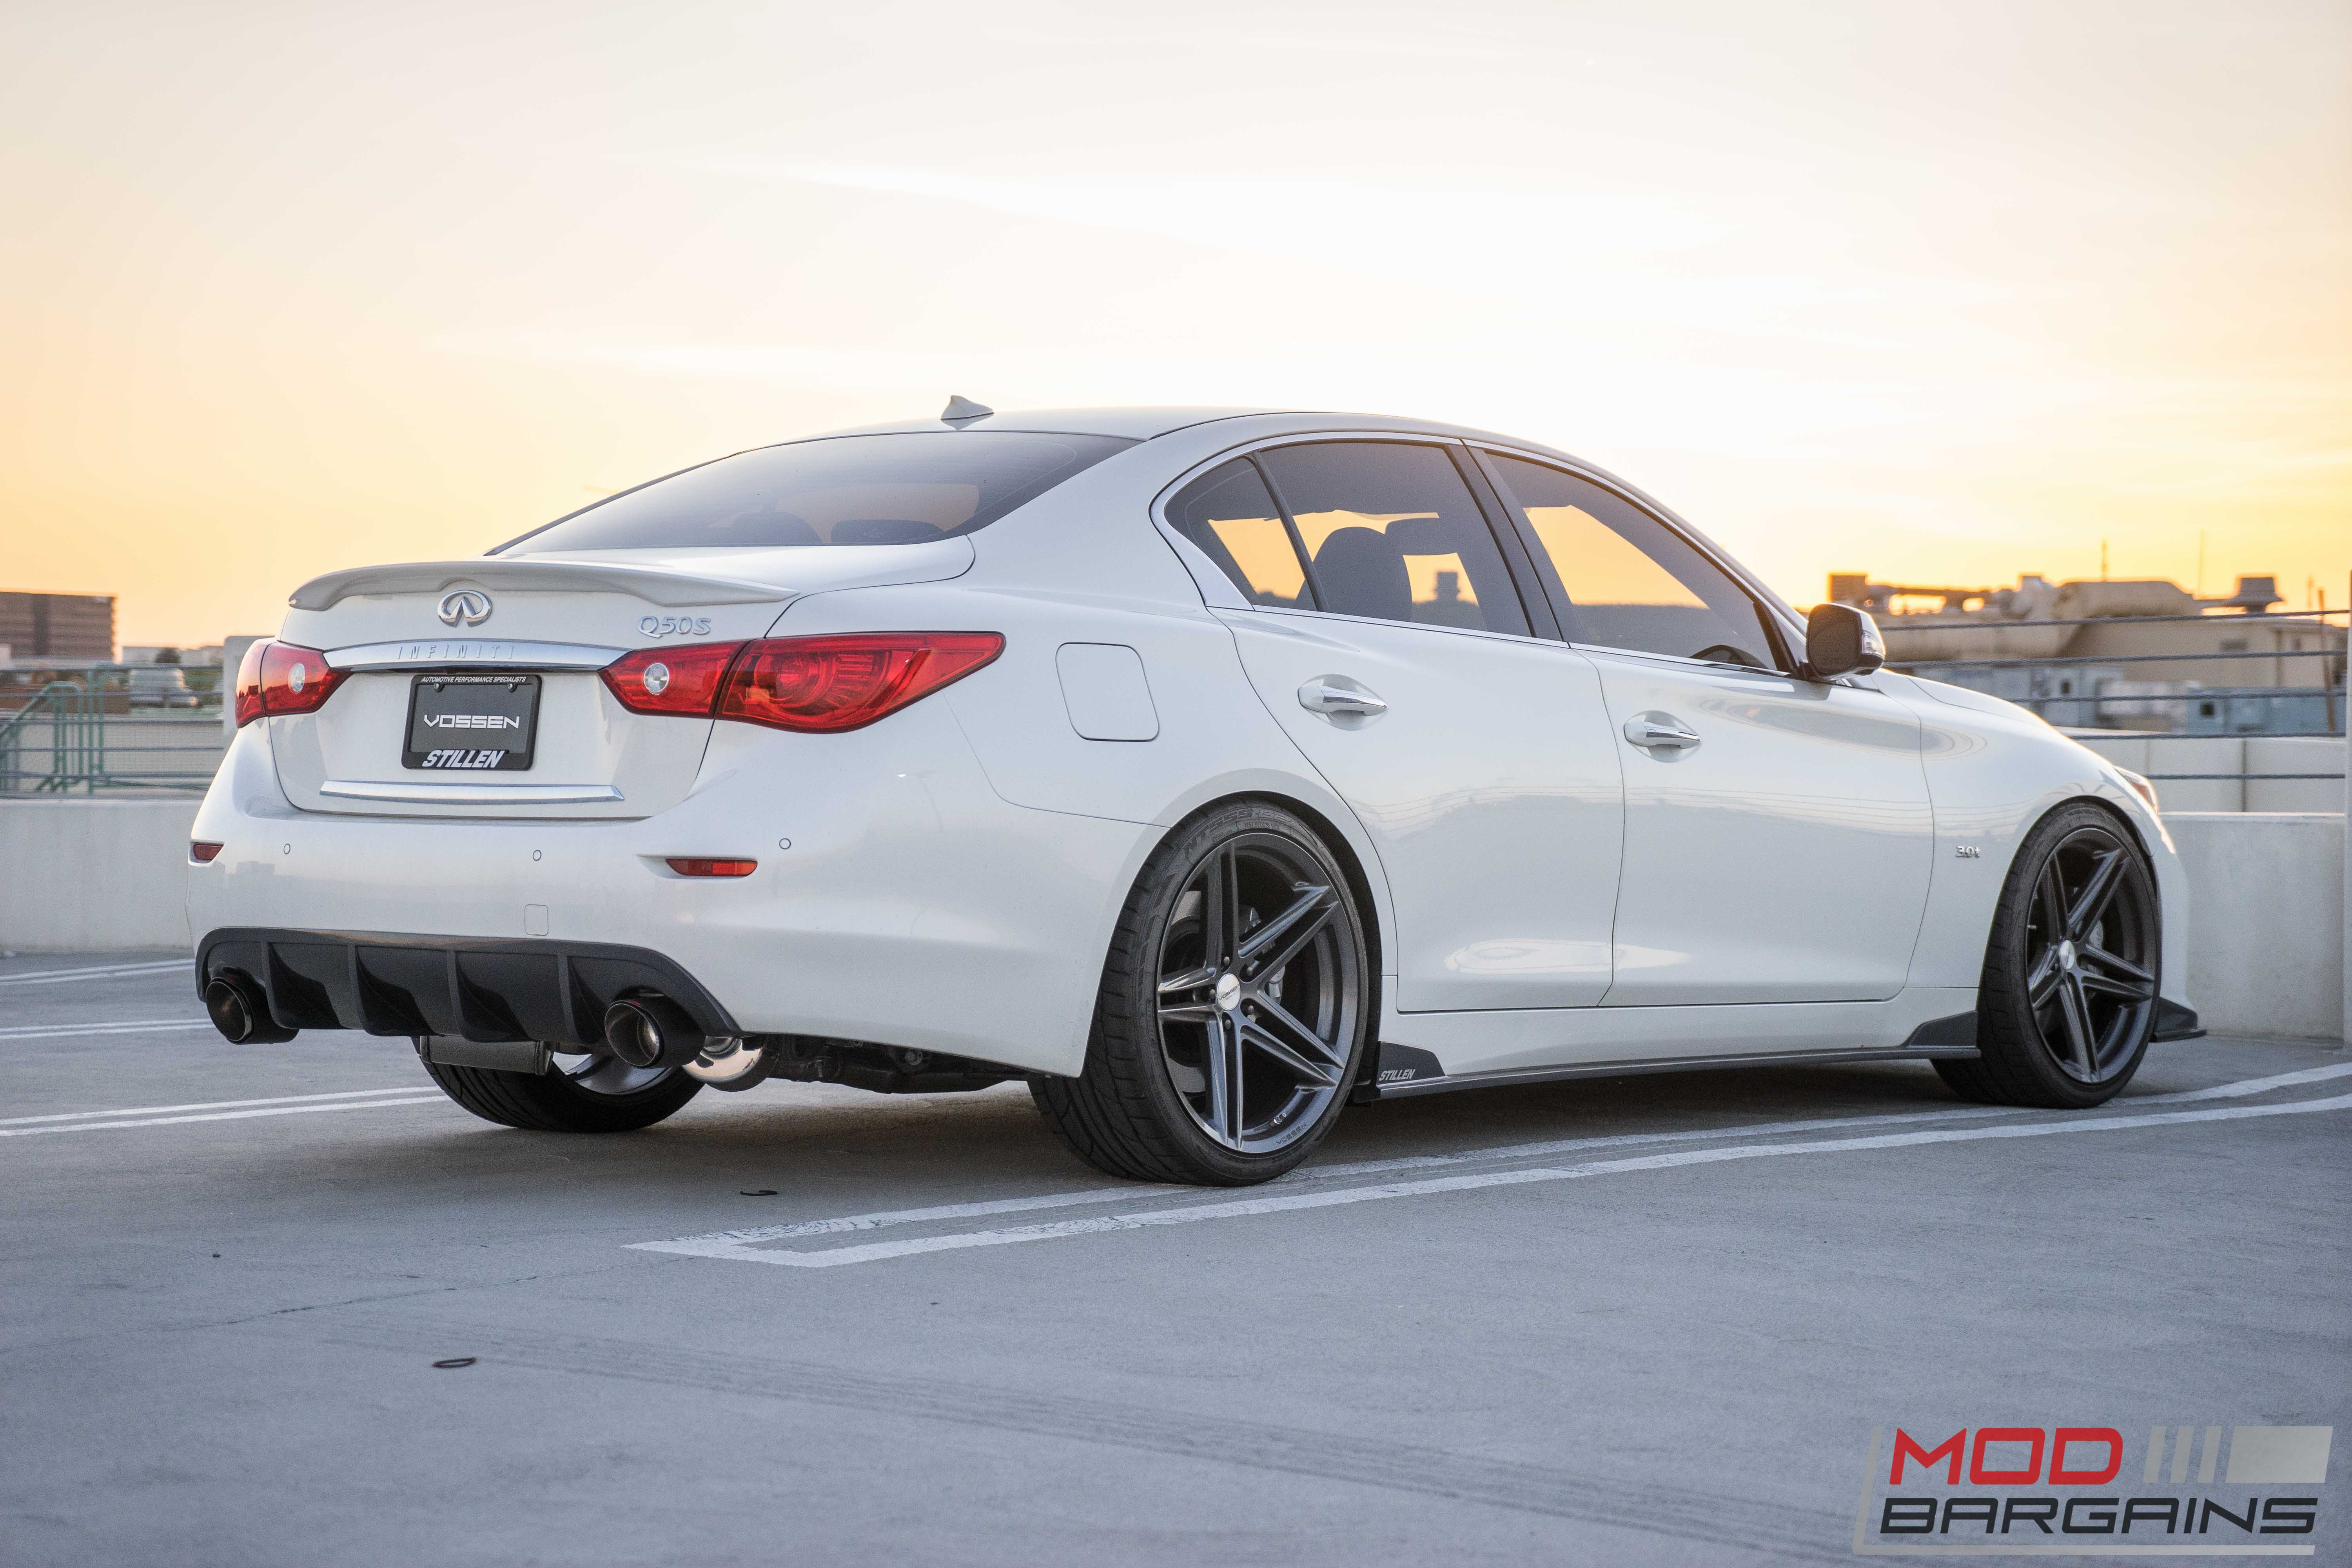 Best Mods for Infiniti Q50 3 0t 2016 3 0TT VR30DDTT